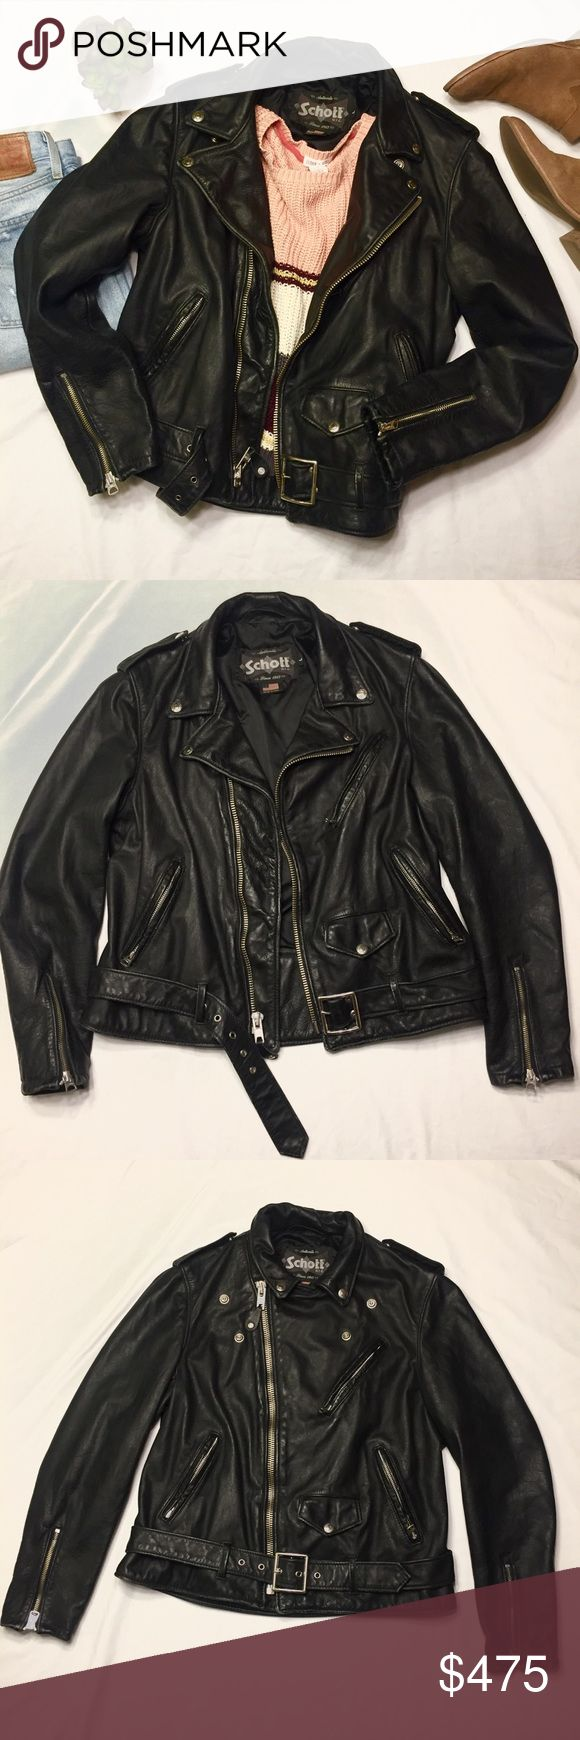 """Authentic Schott N.Y.C Boyfriend Moto Jacket This Authentic Schott N.Y.C. Vintaged cowhide """"boyfriend"""" fit jacket is currently for sale at Nordstrom for $760. Beautiful, supple leather and on trend boyfriend fit makes this THE jacket for 2017-18. This is the classic moto jacket that never wears out or goes out of style! This jacket runs small, so may fit a medium (see measurements). EUC! See pics for minor wear!   https://m.shop.nordstrom.com/s/schott-nyc-boyfriend-leather-jacket/4647674…"""